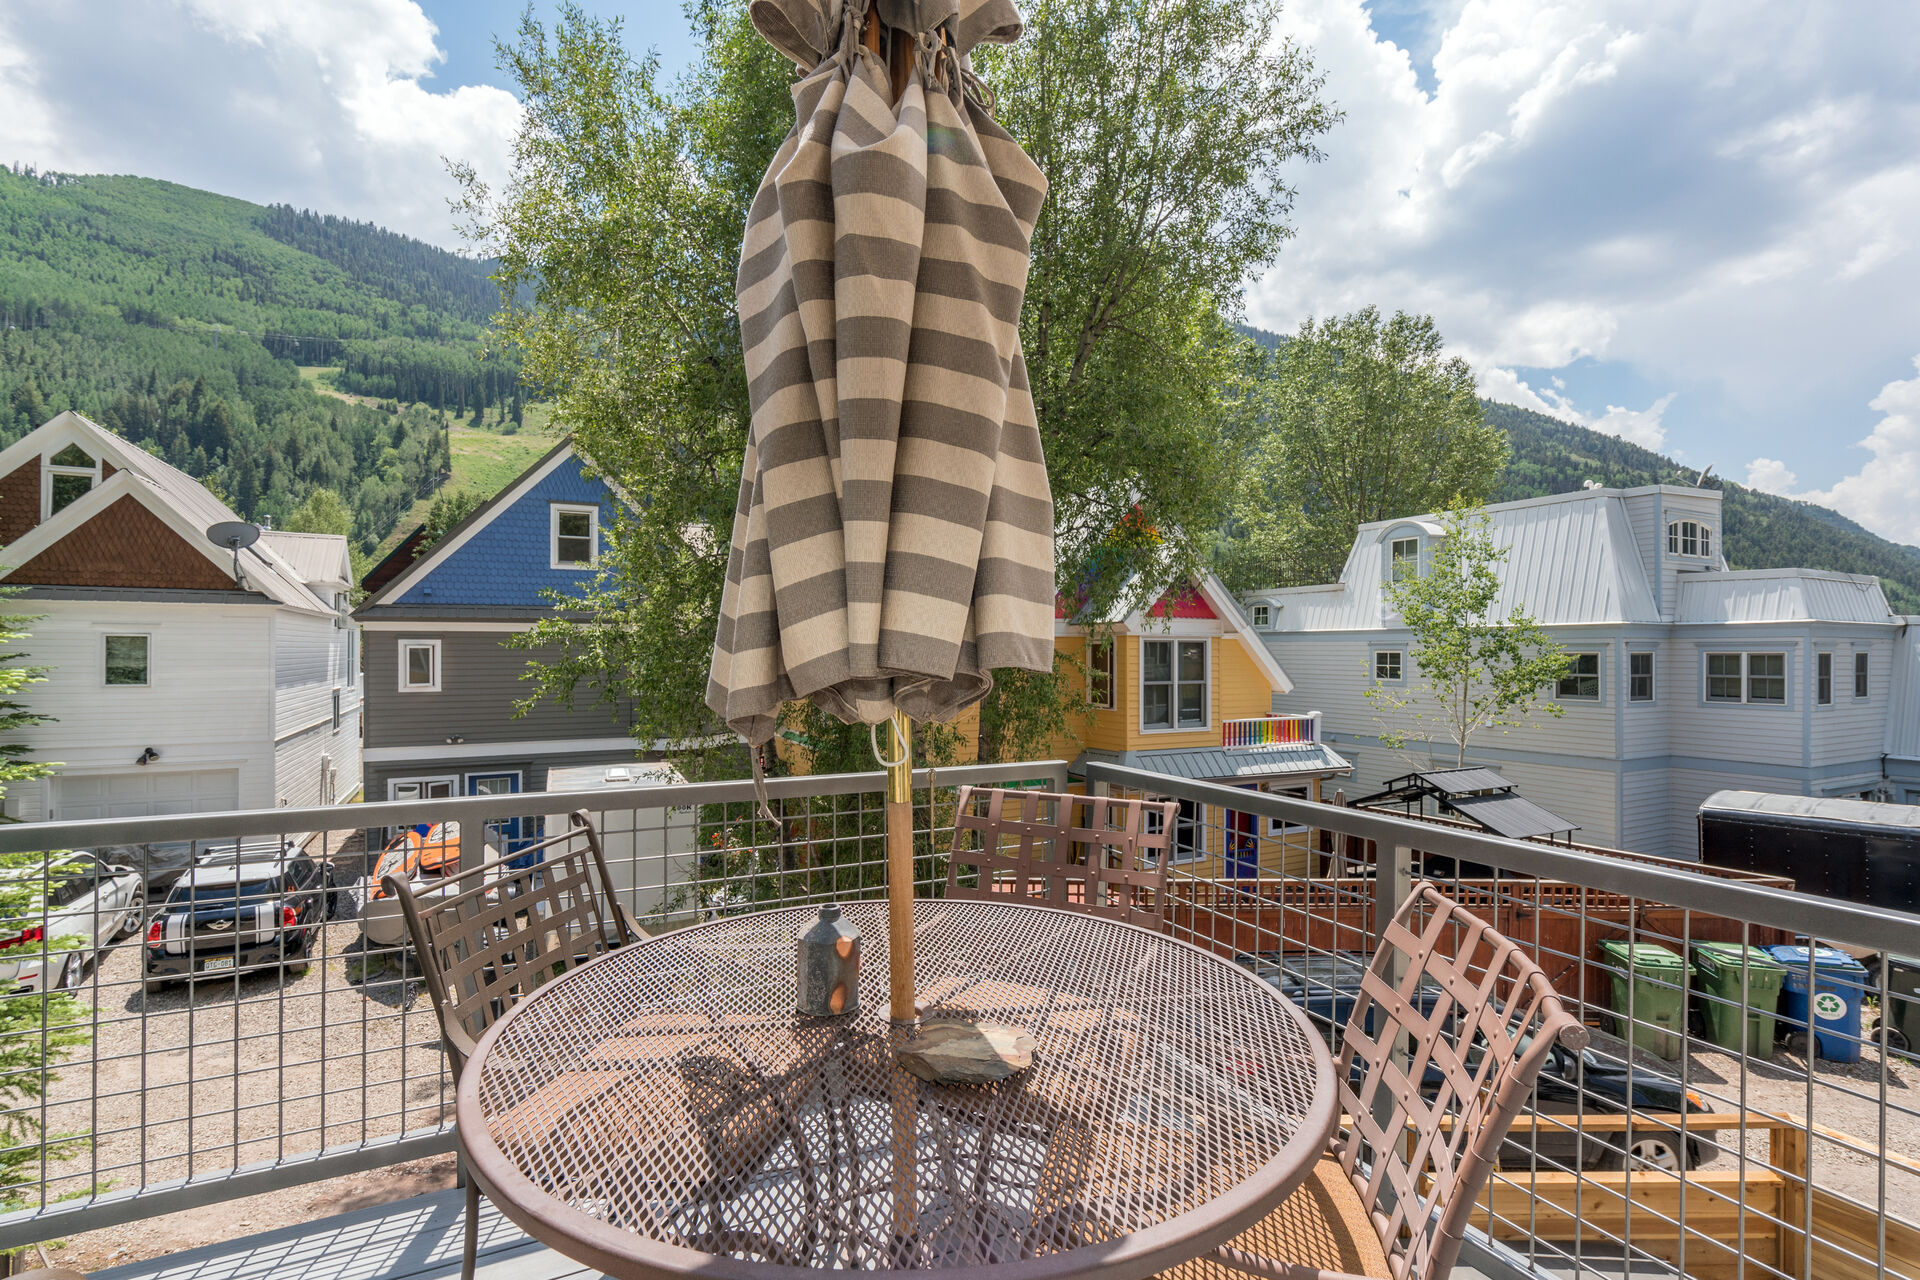 Patio with Seating and Views of the Mountainside at Bachman Village #13